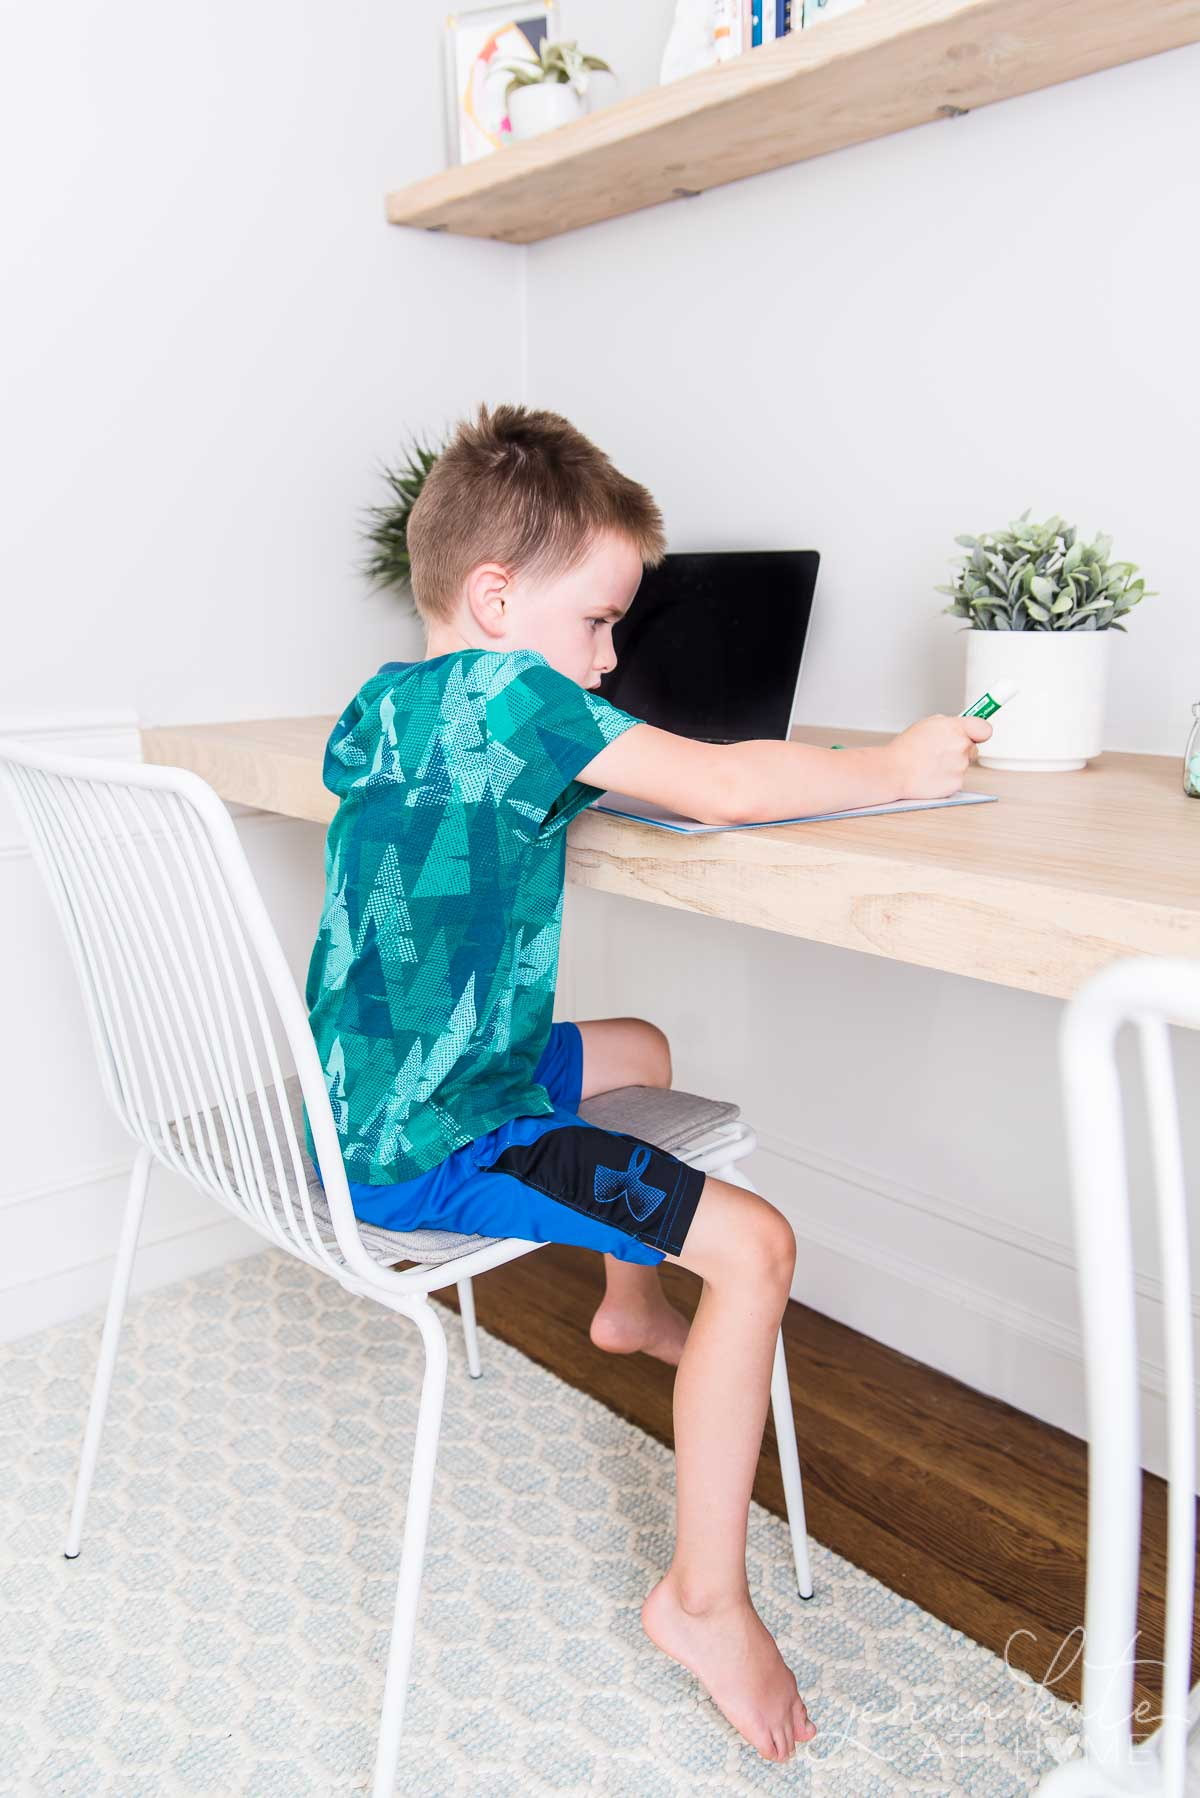 DIY homeschool or remote learning desk